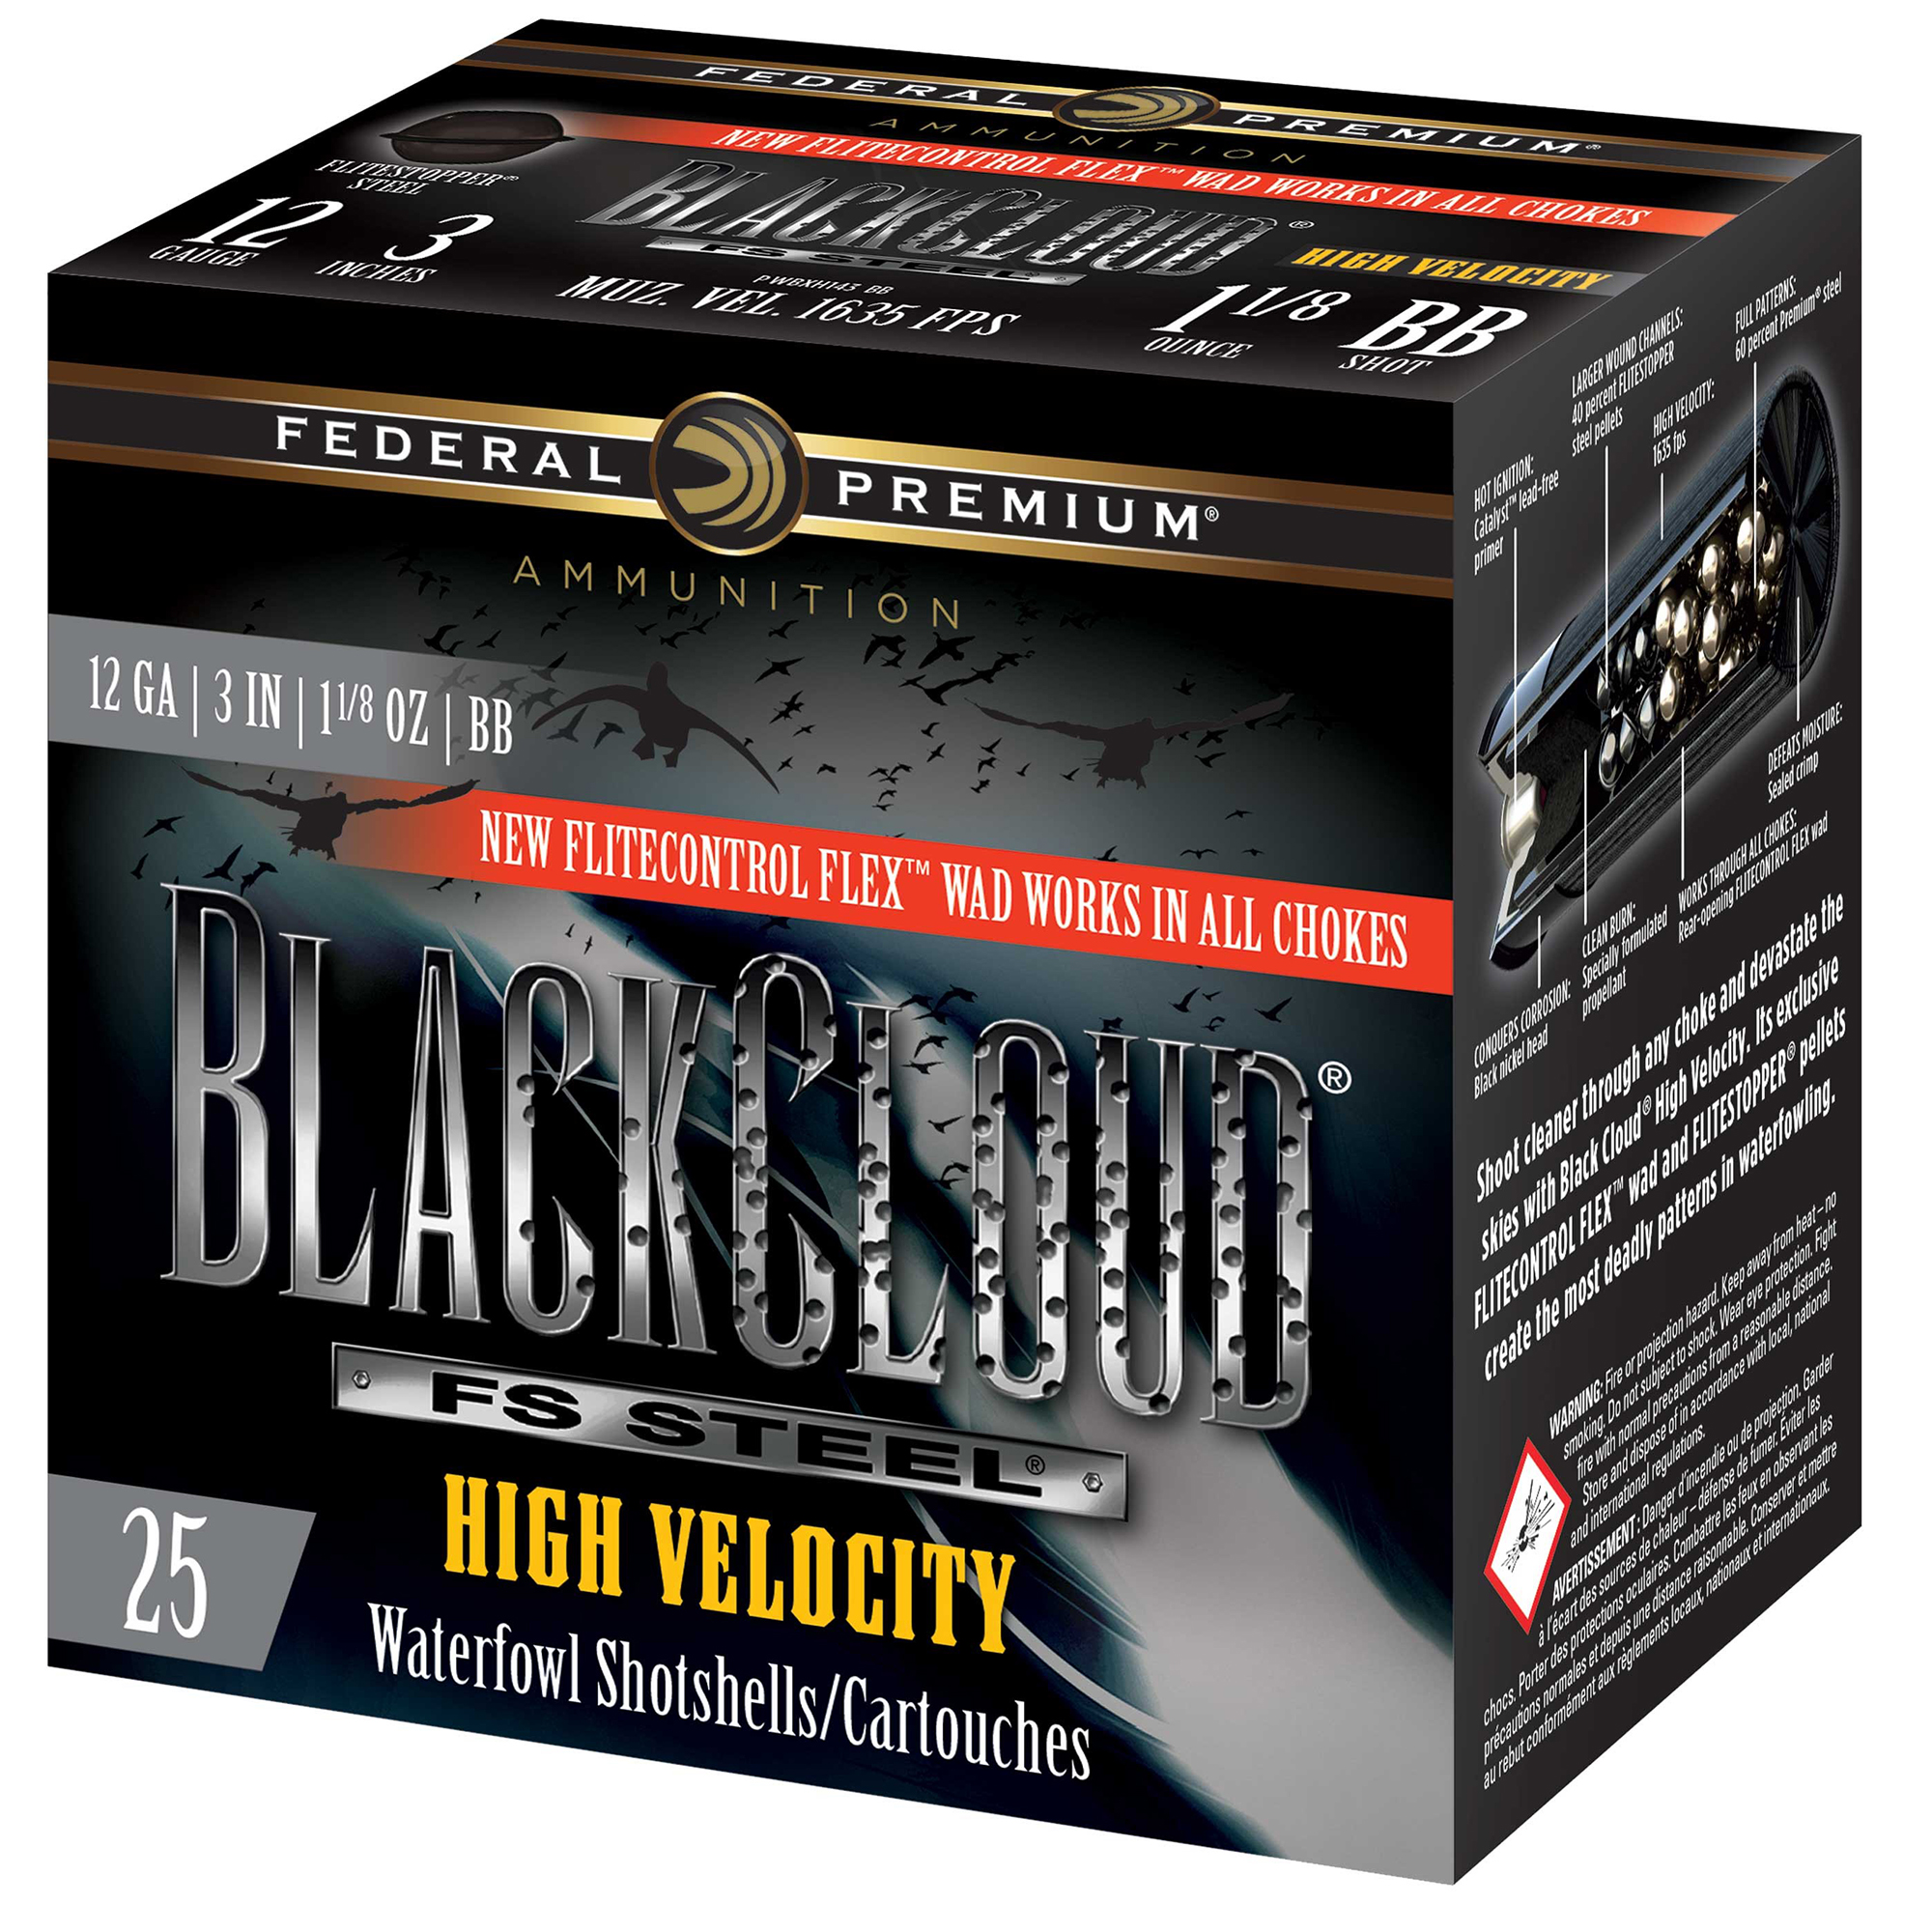 Federal Premium Black Cloud FS Steel High Velocity Loads, 12-ga, 3″, 1-1/8 oz.